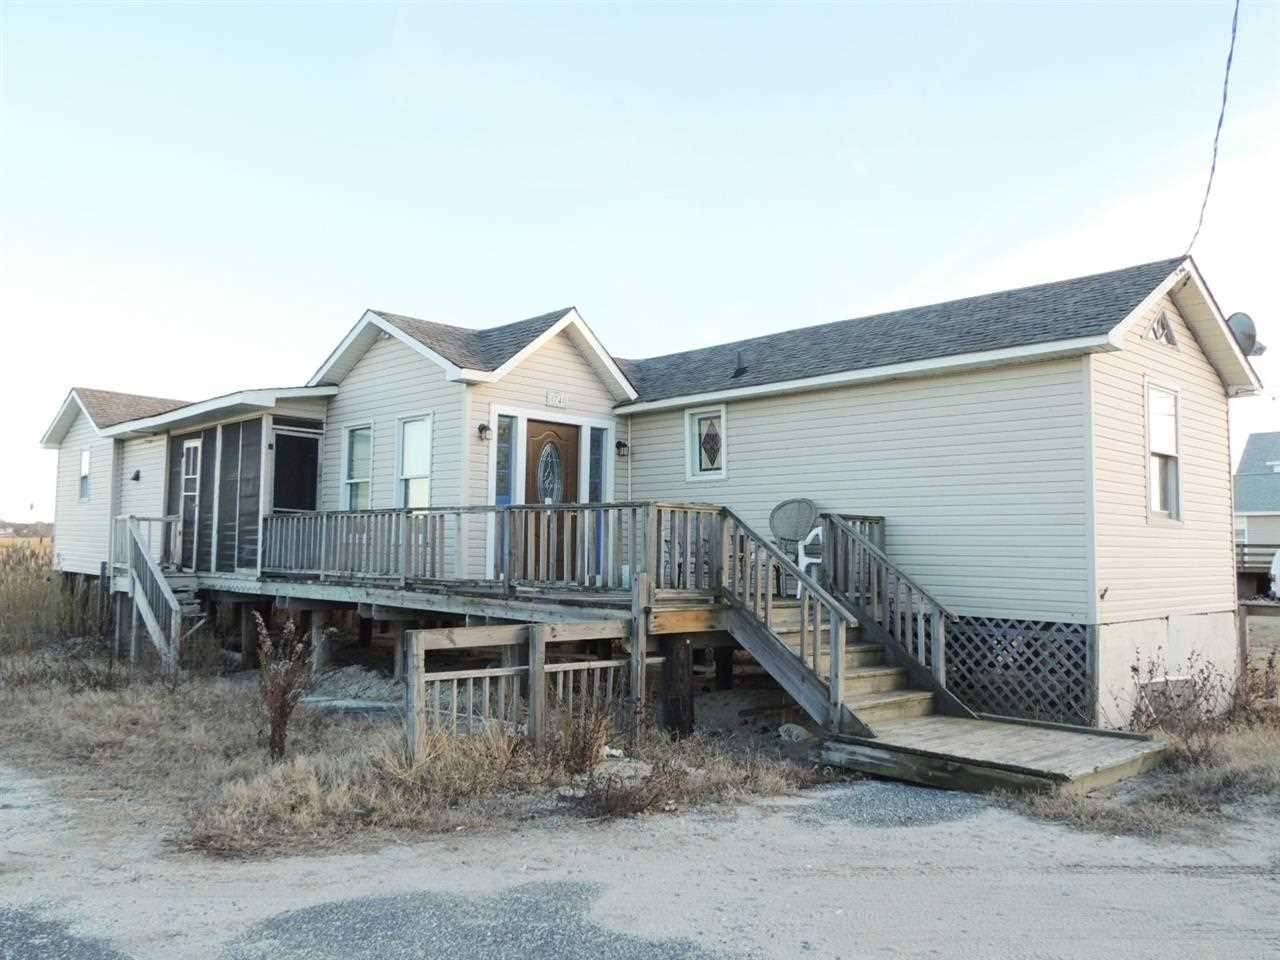 74 N Beach Avenue - Cape May Court House